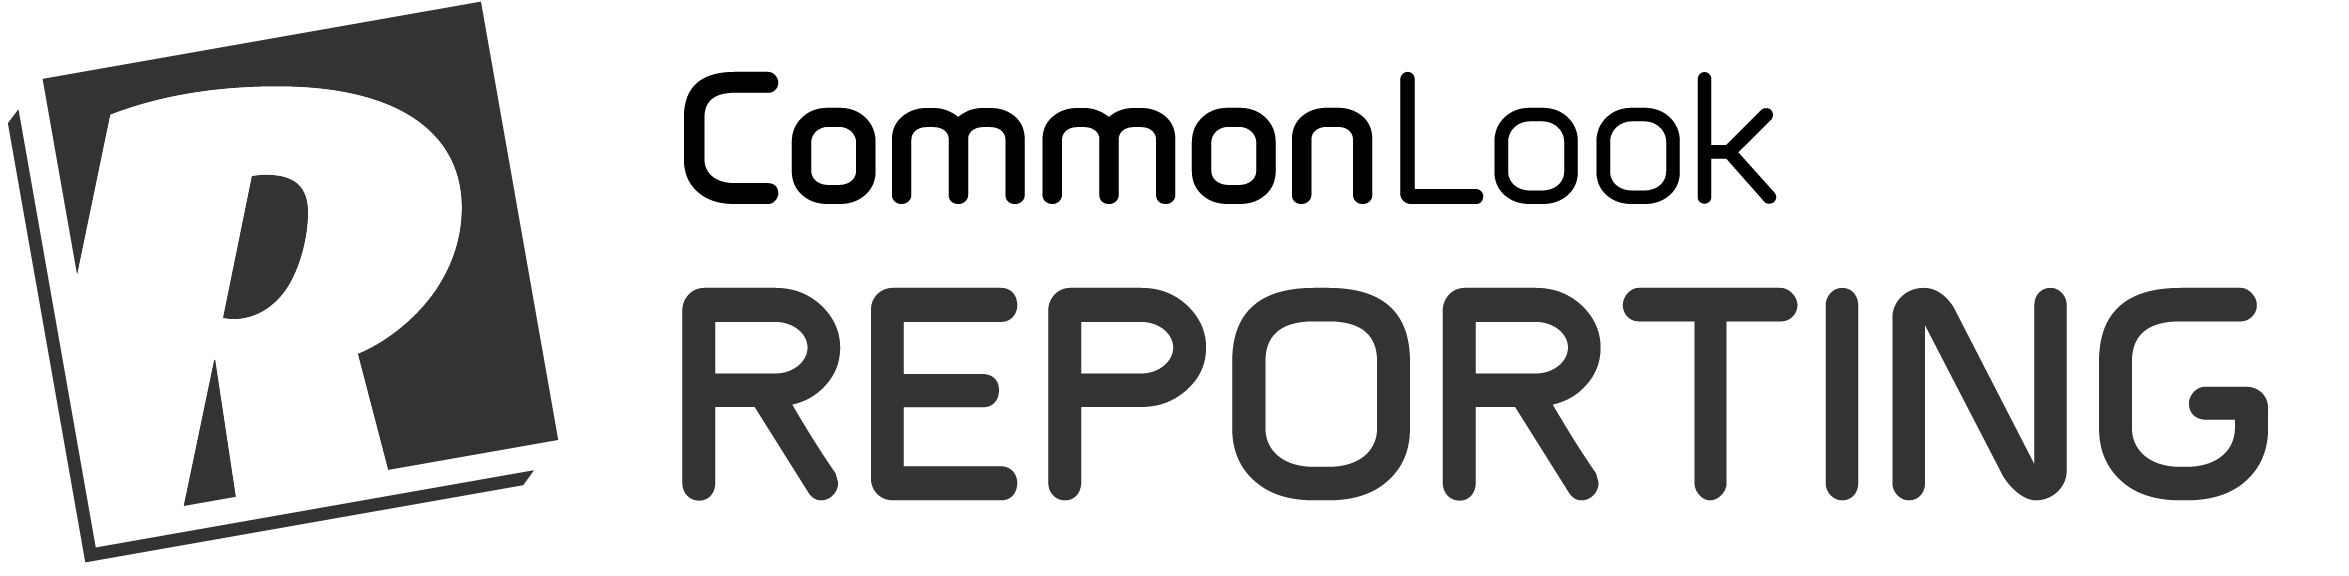 commonlook-reporting-logo